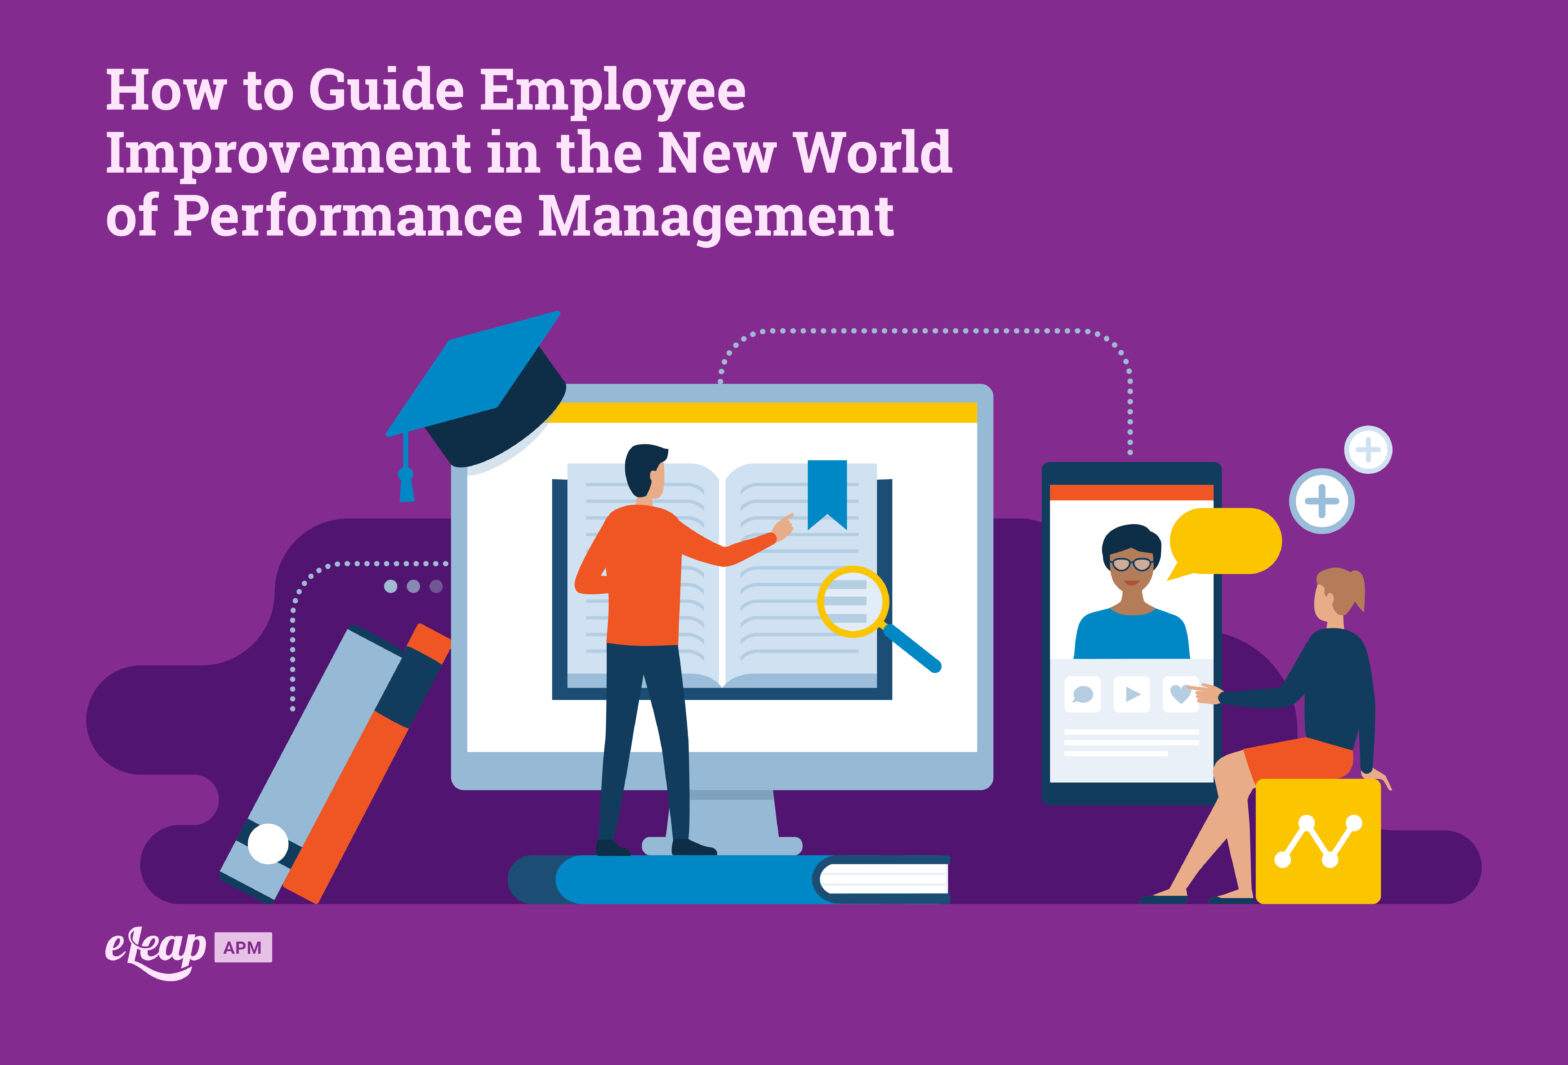 How to Guide Employee Improvement in the New World of Performance Management